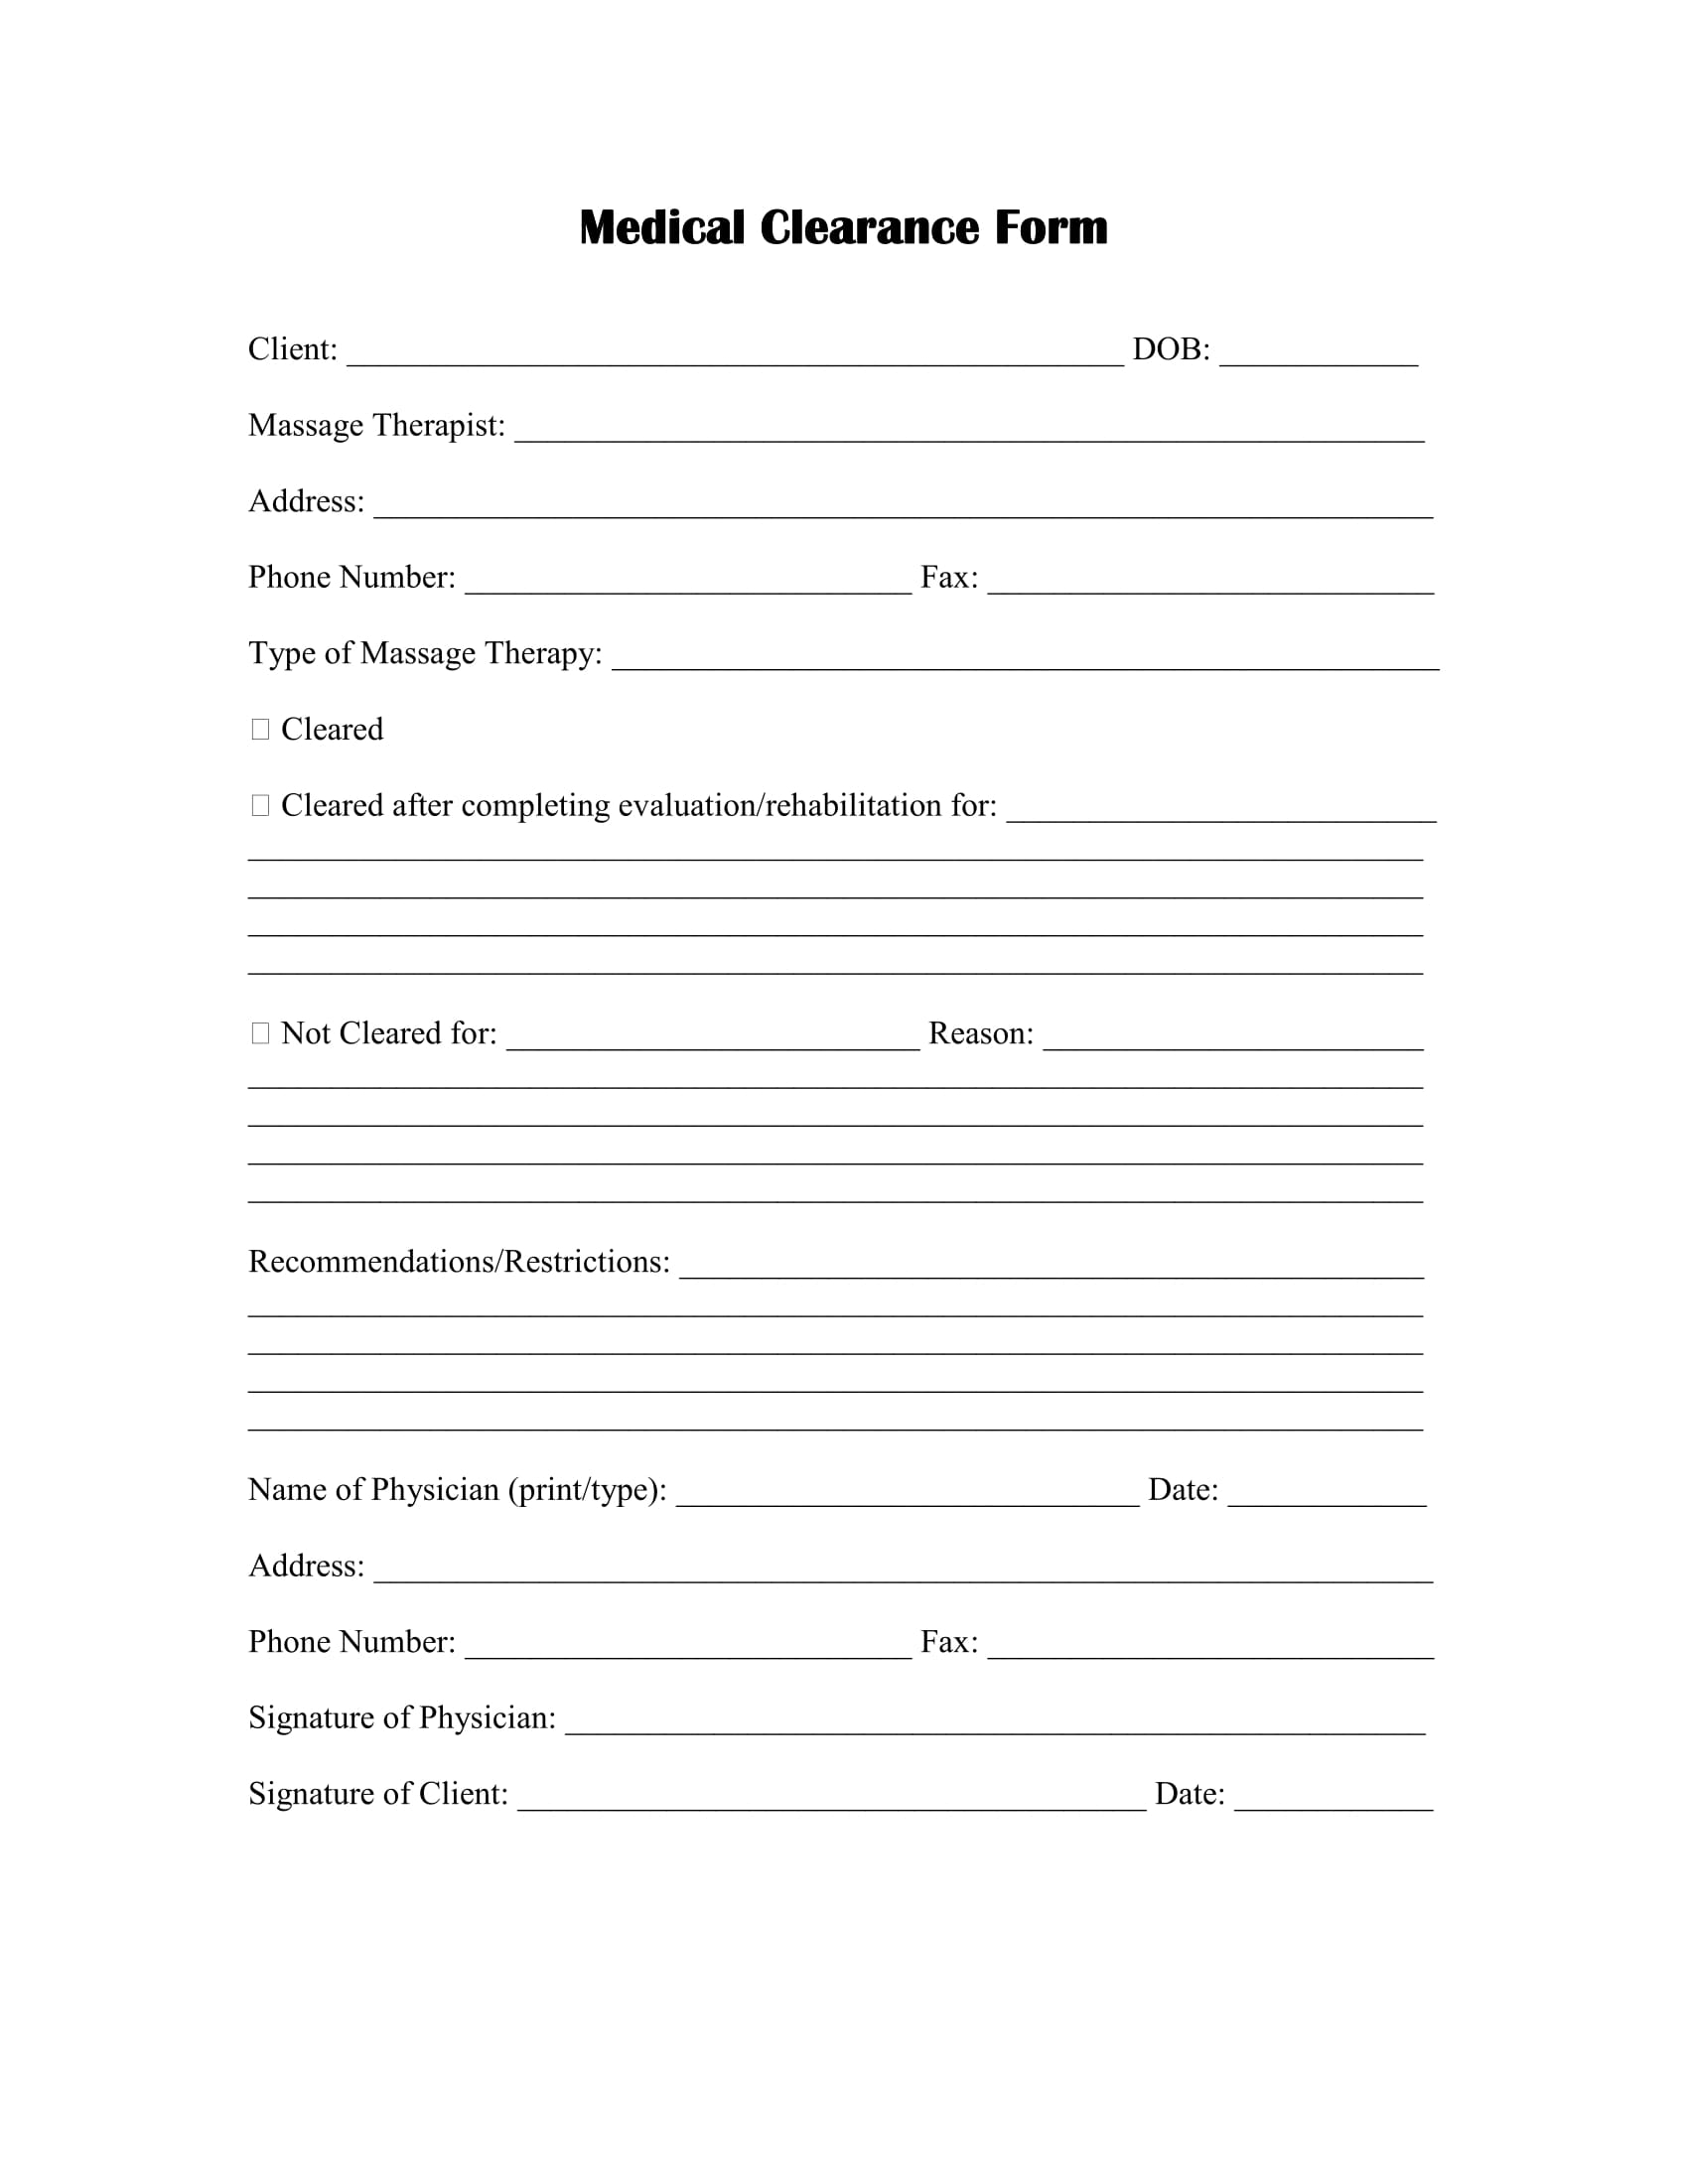 massage therapy medical clearance form 01